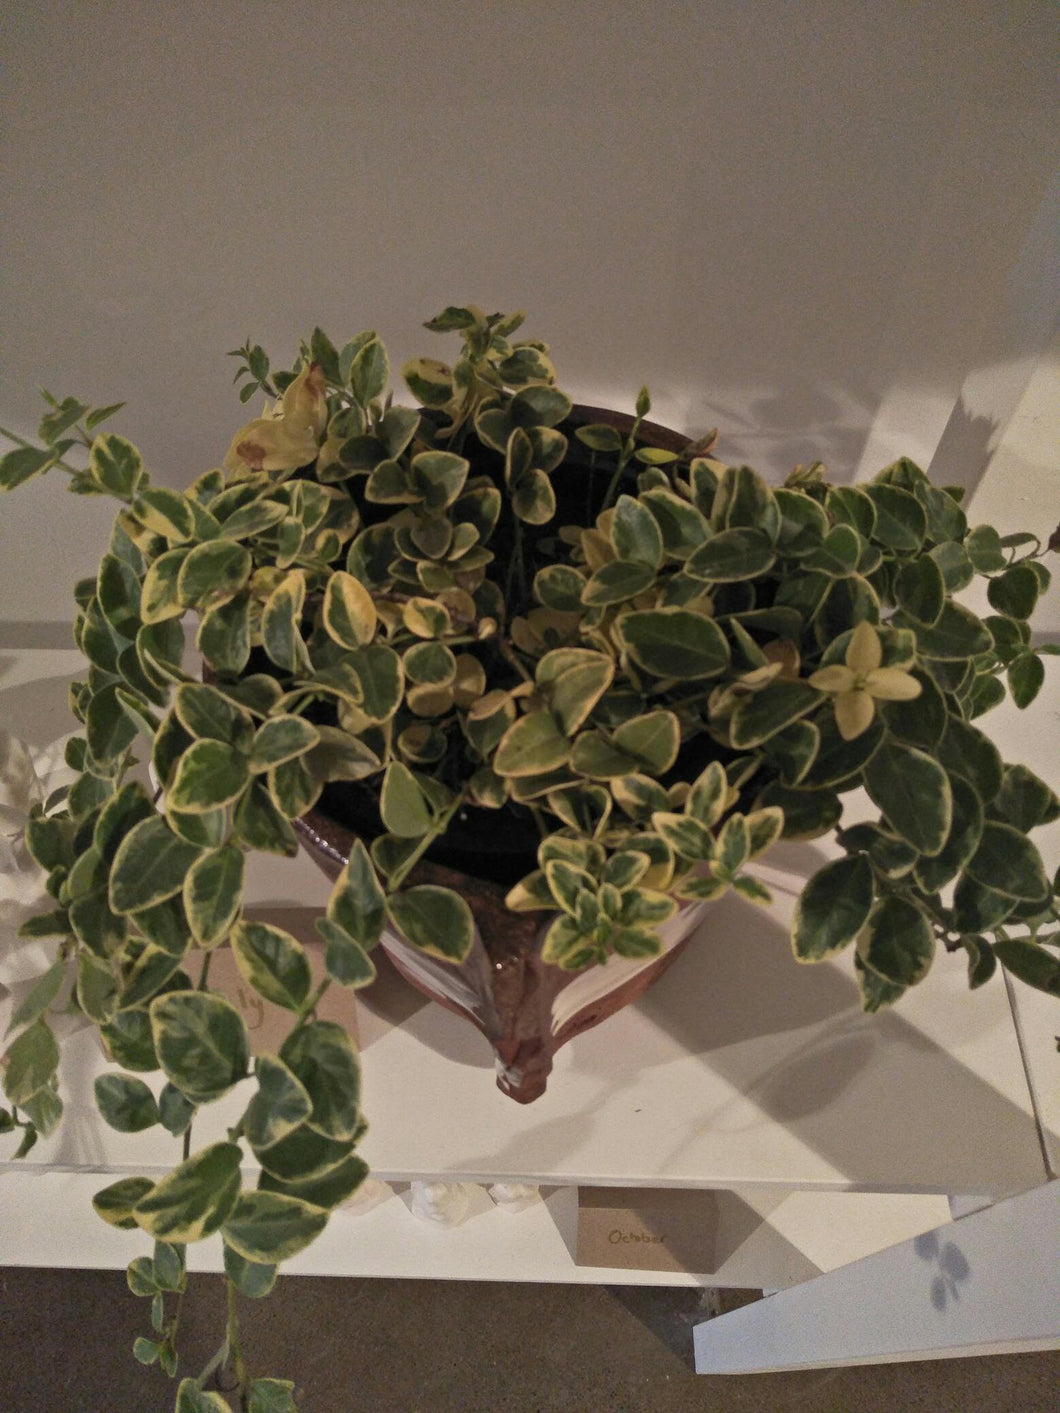 Potted plant - Vinca variegated